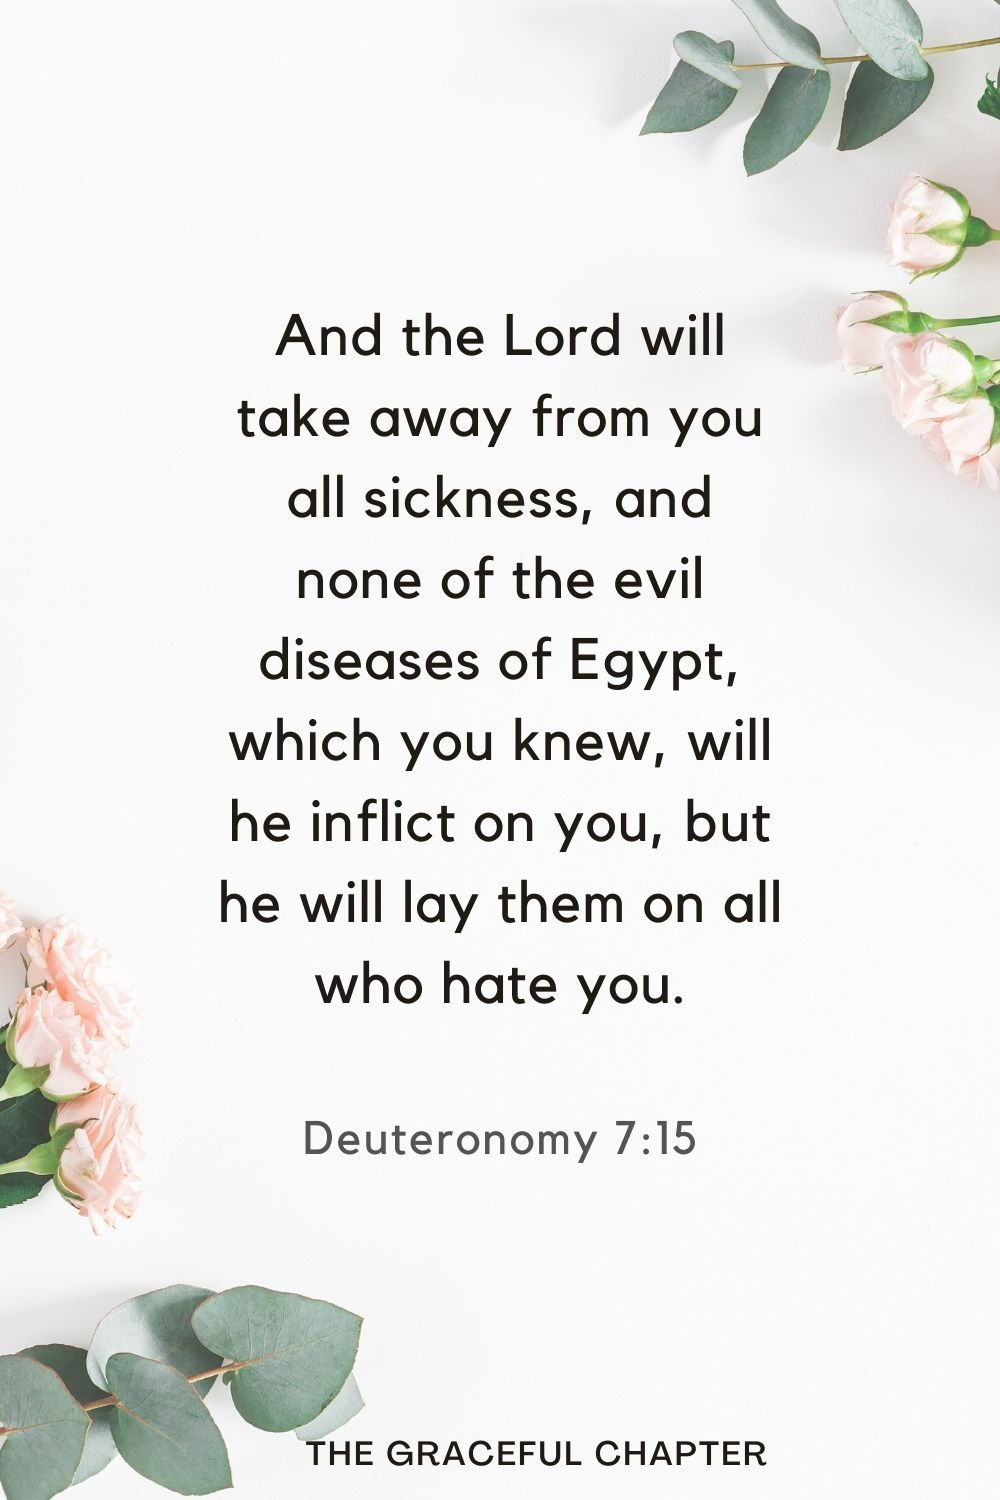 And the Lord will take away from you all sickness, and none of the evil diseases of Egypt, which you knew, will he inflict on you, but he will lay them on all who hate you. Deuteronomy 7:15